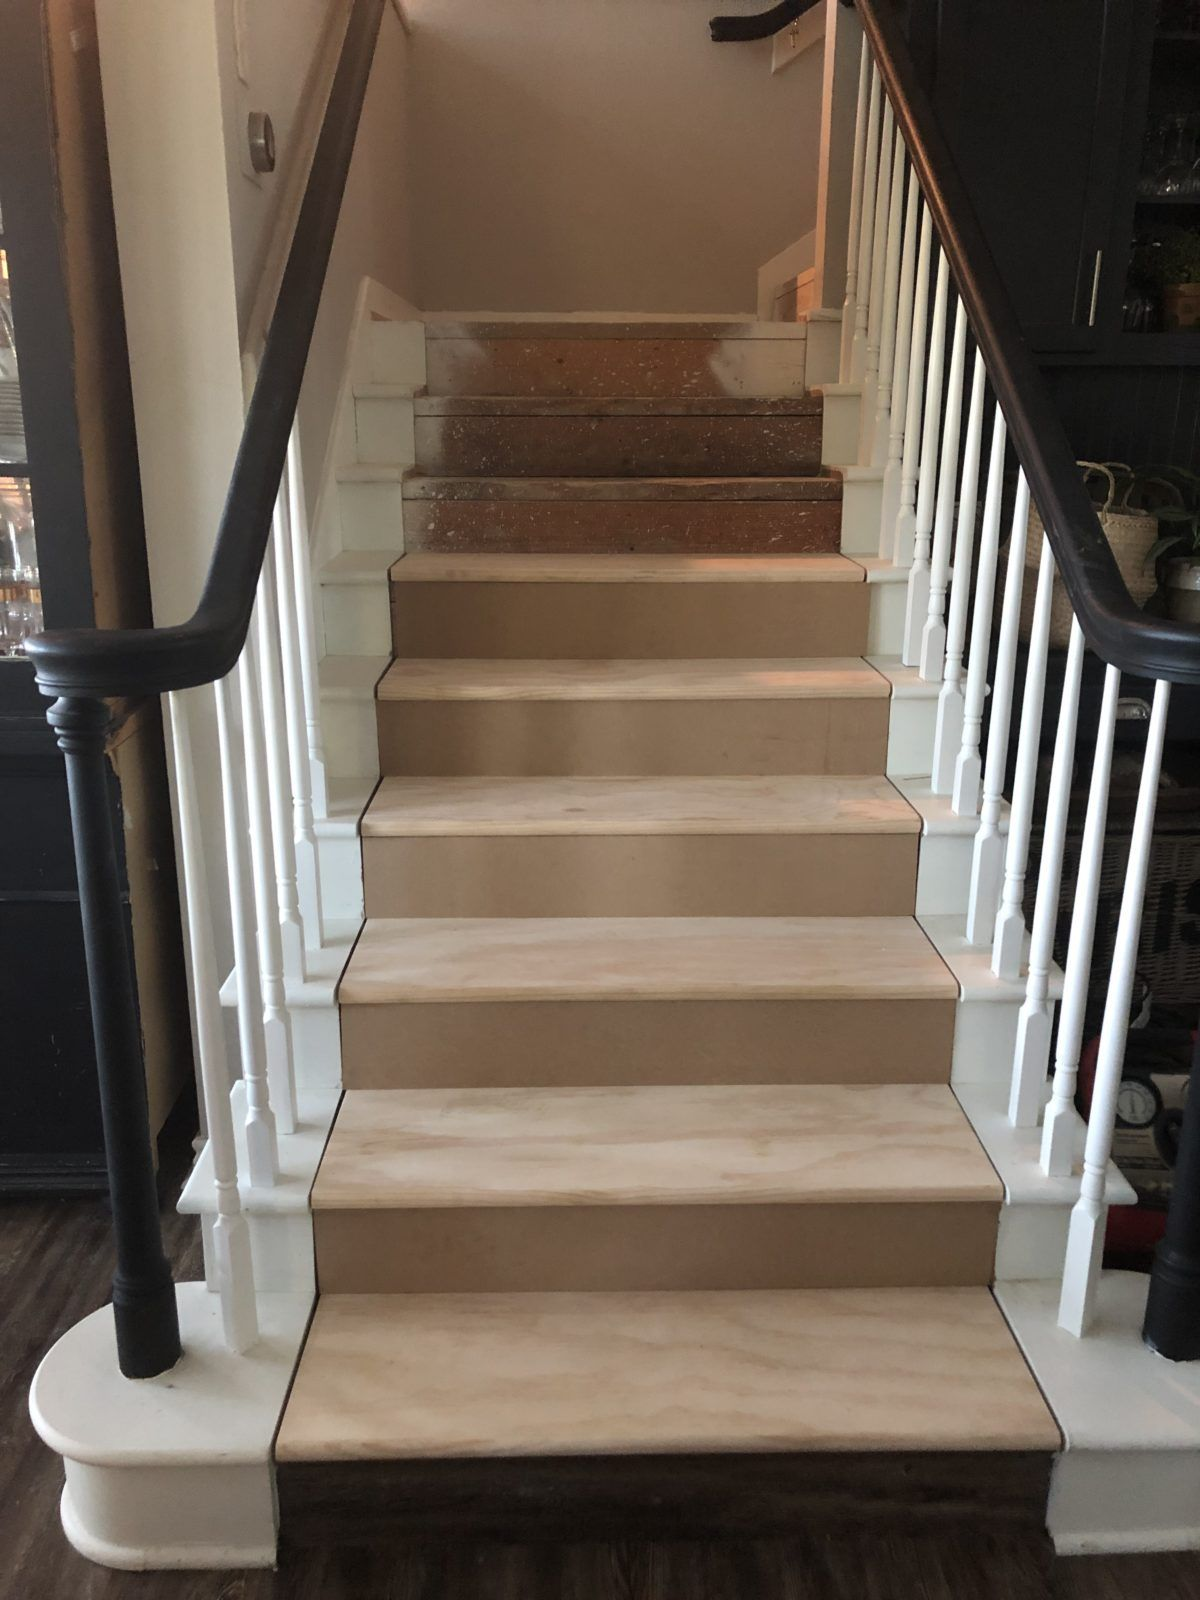 How To Update Carpeted Stairs With Paint Open concept